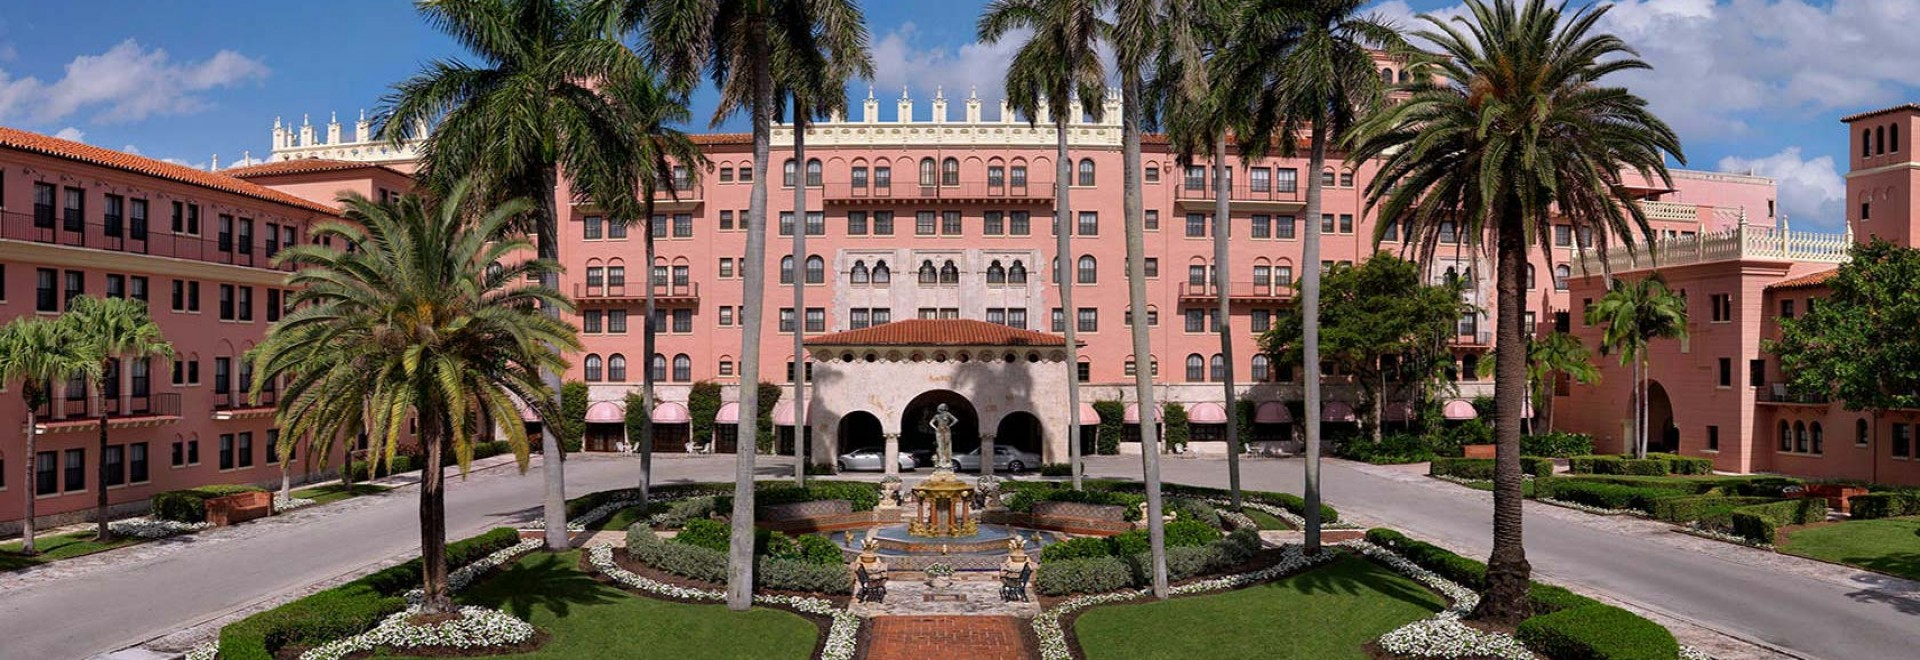 Boca Raton Resort & Club, Florida - Book. Travel. Play.